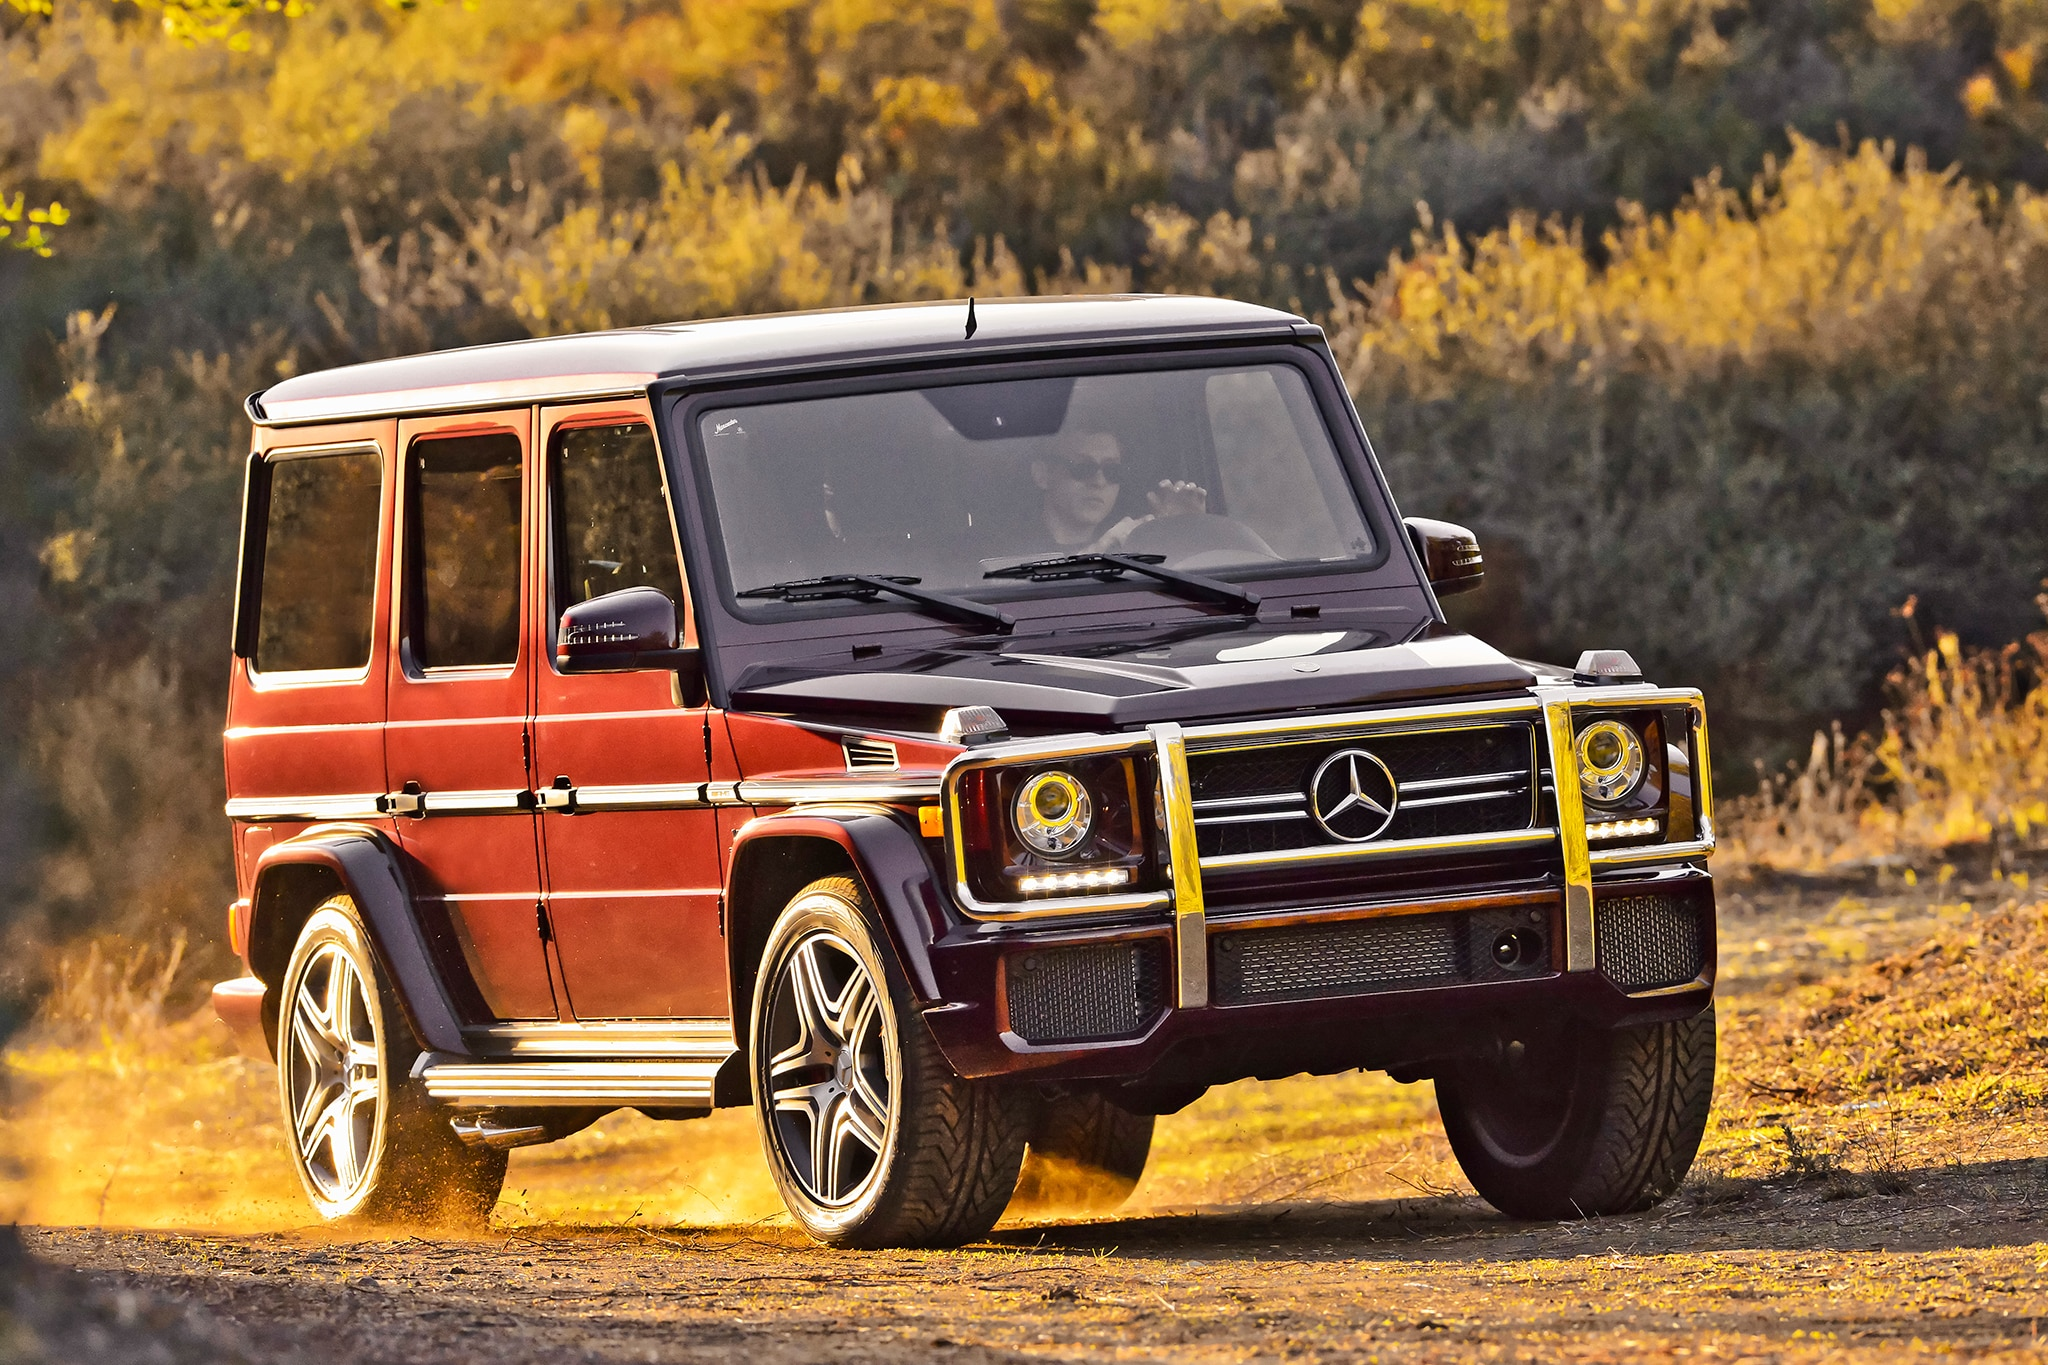 2014 Mercedes Benz G63 AMG Three Quarters View Offroad1